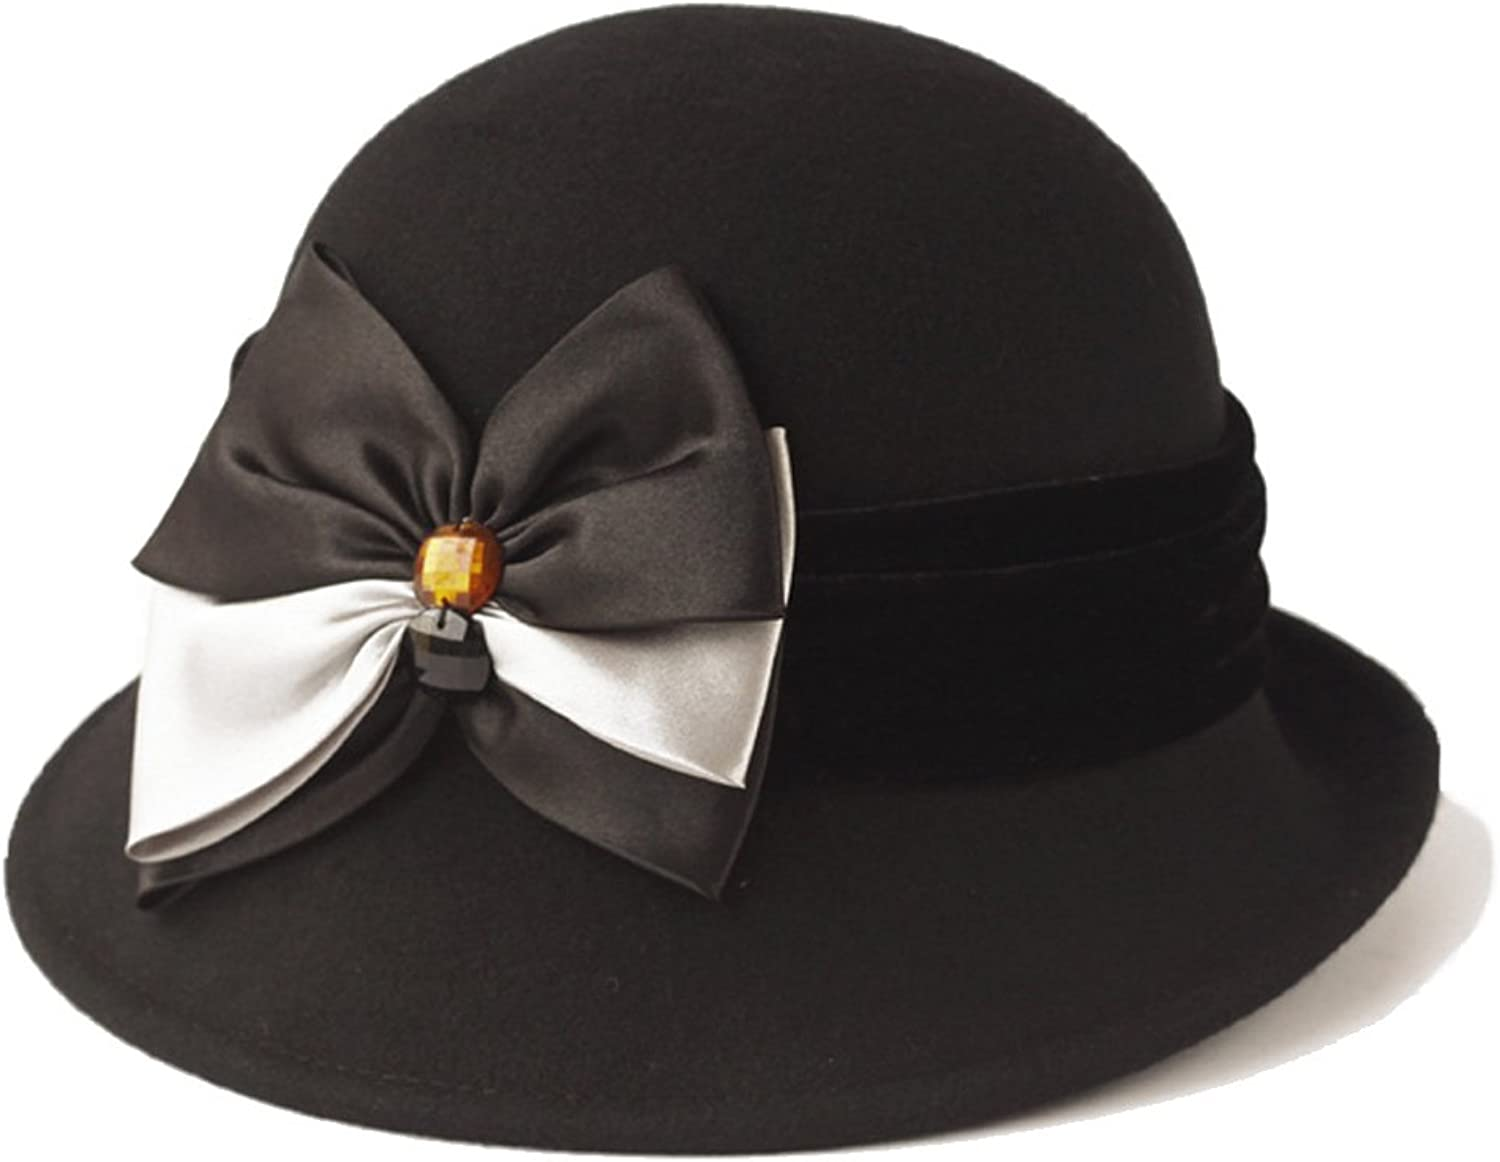 Vintage Womens 100% Wool Felt Hat with Bow 3 color